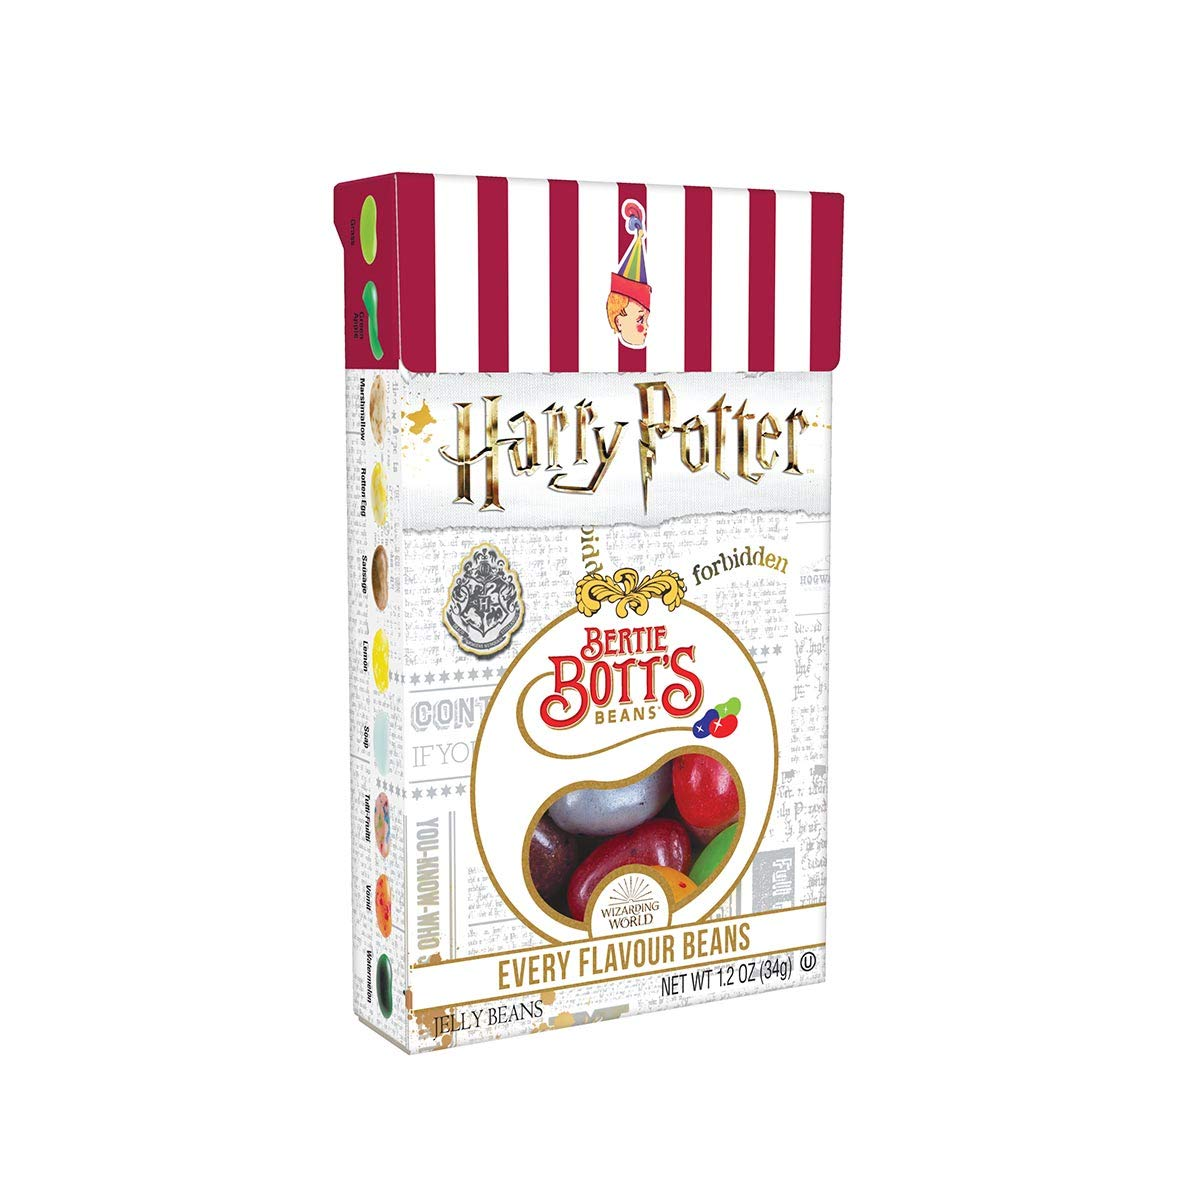 Jelly Belly Harry Potter Bertie Bott's Every Flavor Beans - 1.2 oz - 24 ct by Jelly Belly